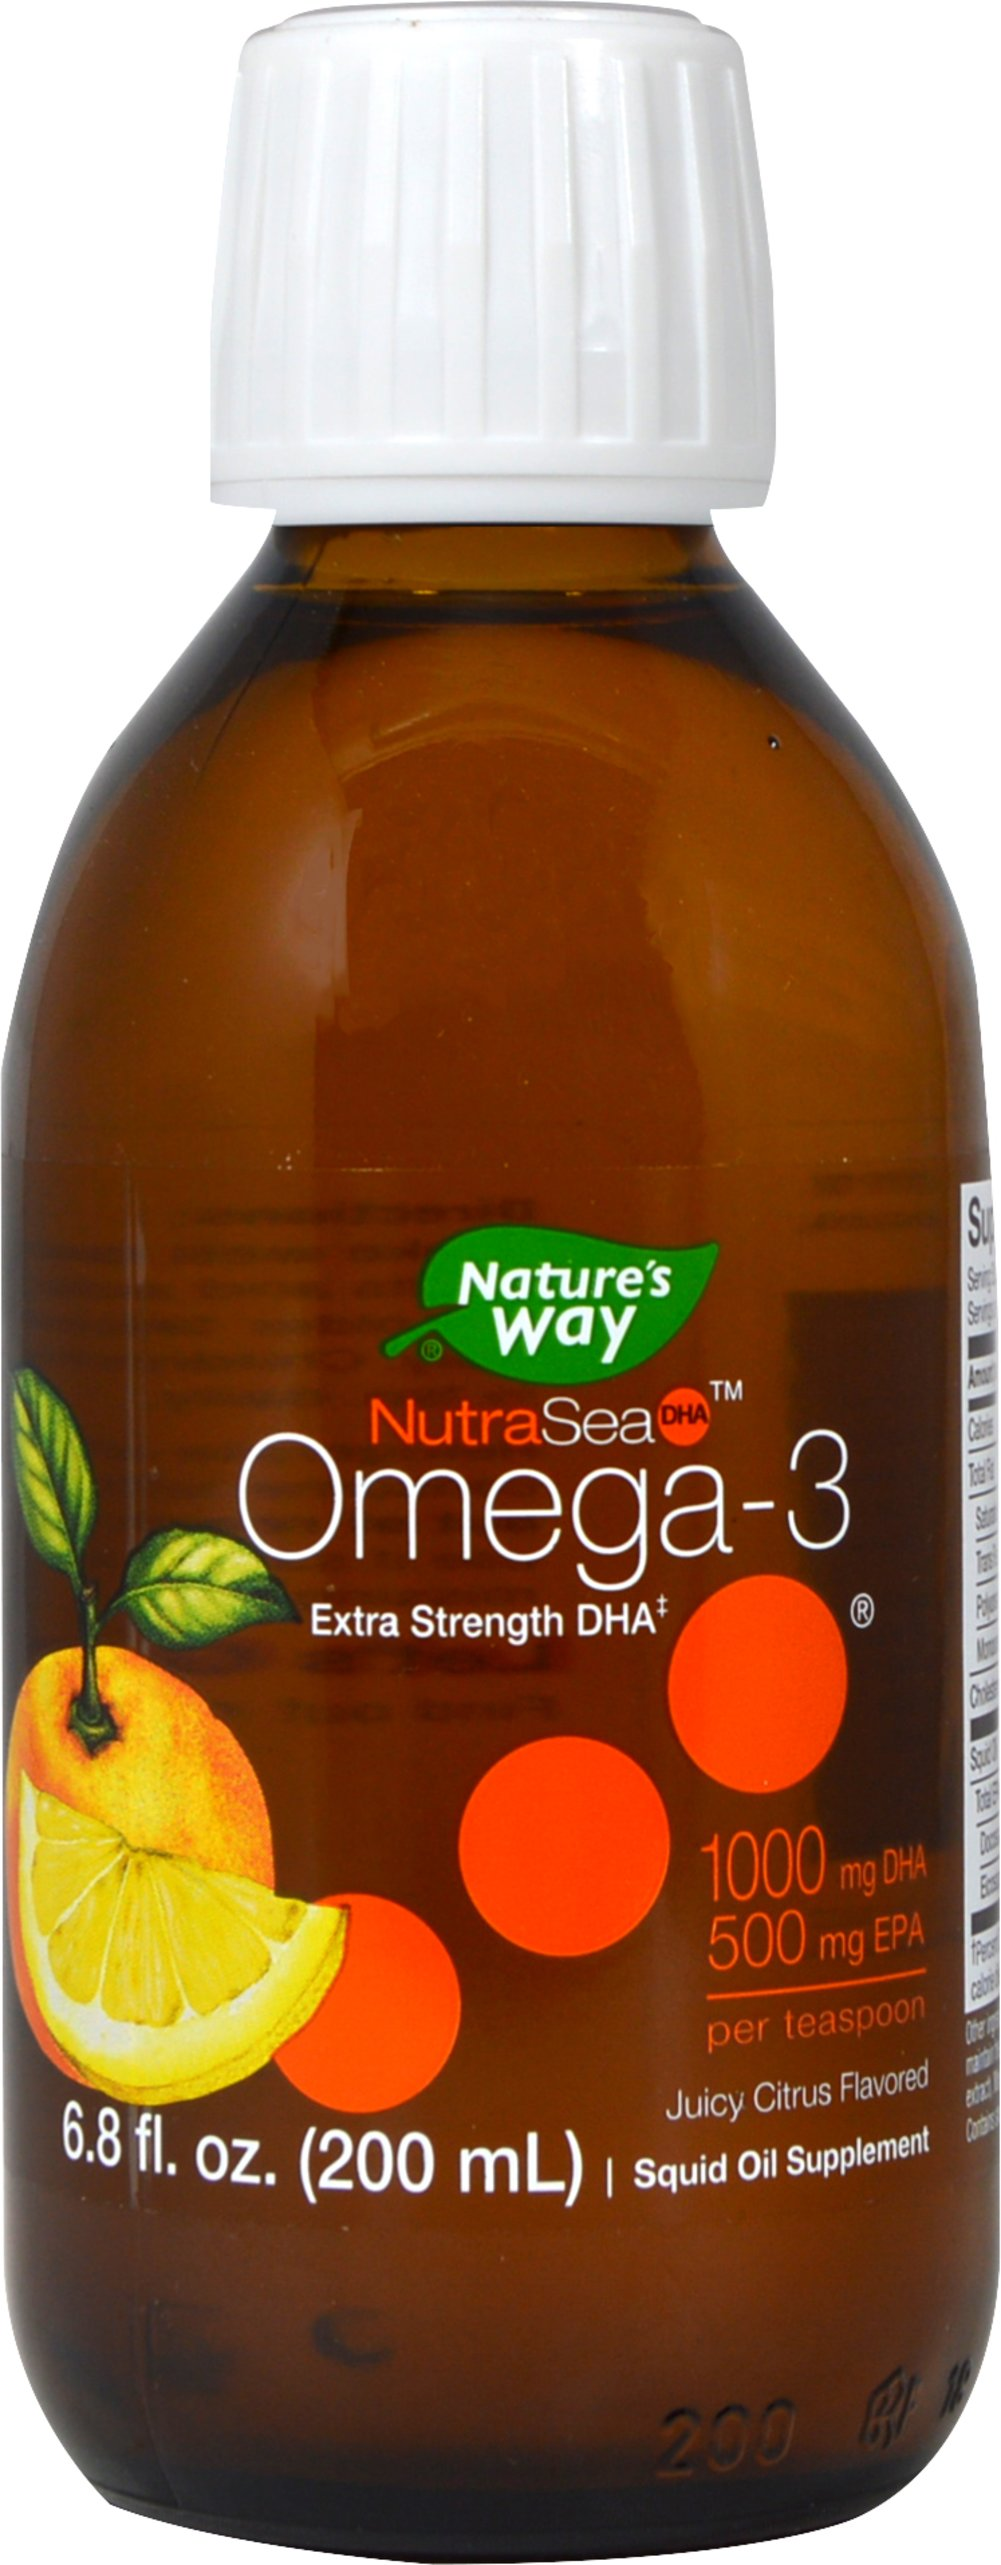 Ascenta NutraSea High DHA Omega-3 1300mg <strong></strong><p><strong>From the Manufacturer's Label: </strong></p><p>• High DHA Omega-3 </p><p>• Ultra pure, great tasting Omega-3</p><p>• Citrus Flavor </p> 6.8 oz Liquid 1300 mg $20.79